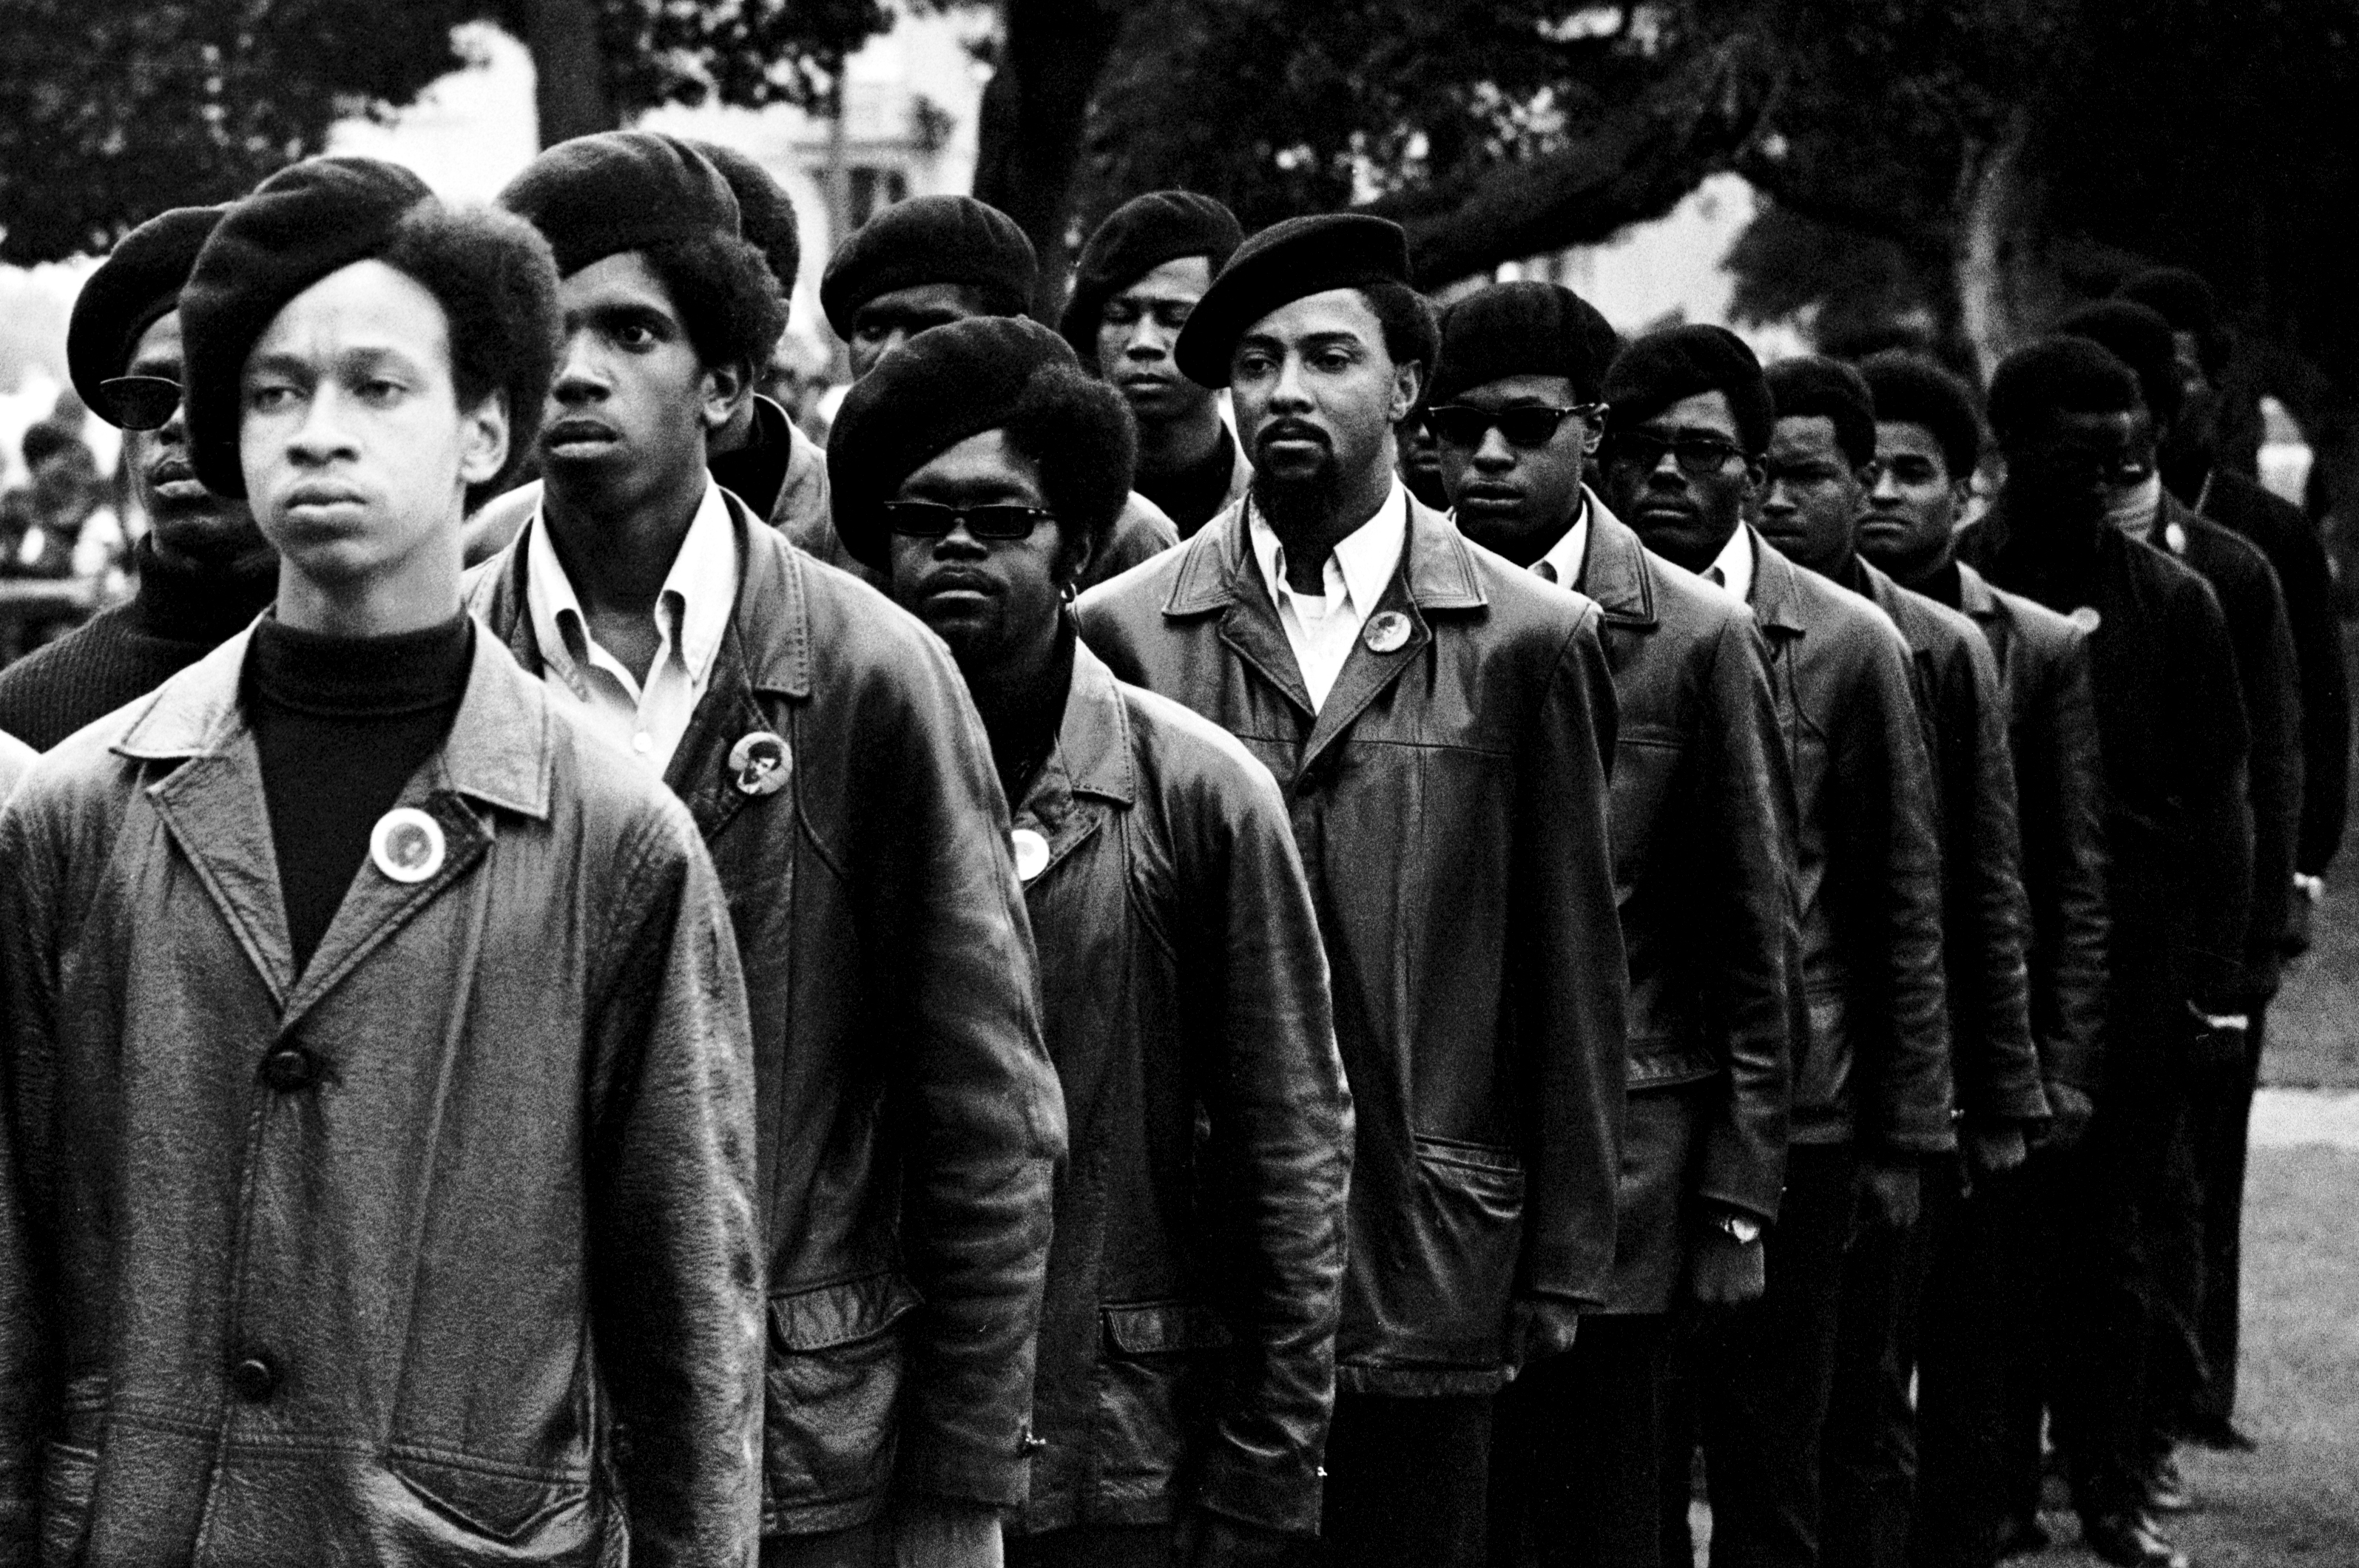 Panthers line up at a Free Huey rally in Defermery Park, in west Oakland's ghetto. Light skinned man is Gregory Harrison. His brother, Oleander, went to Sacramento with Bobby & Huey. July 28, 1968